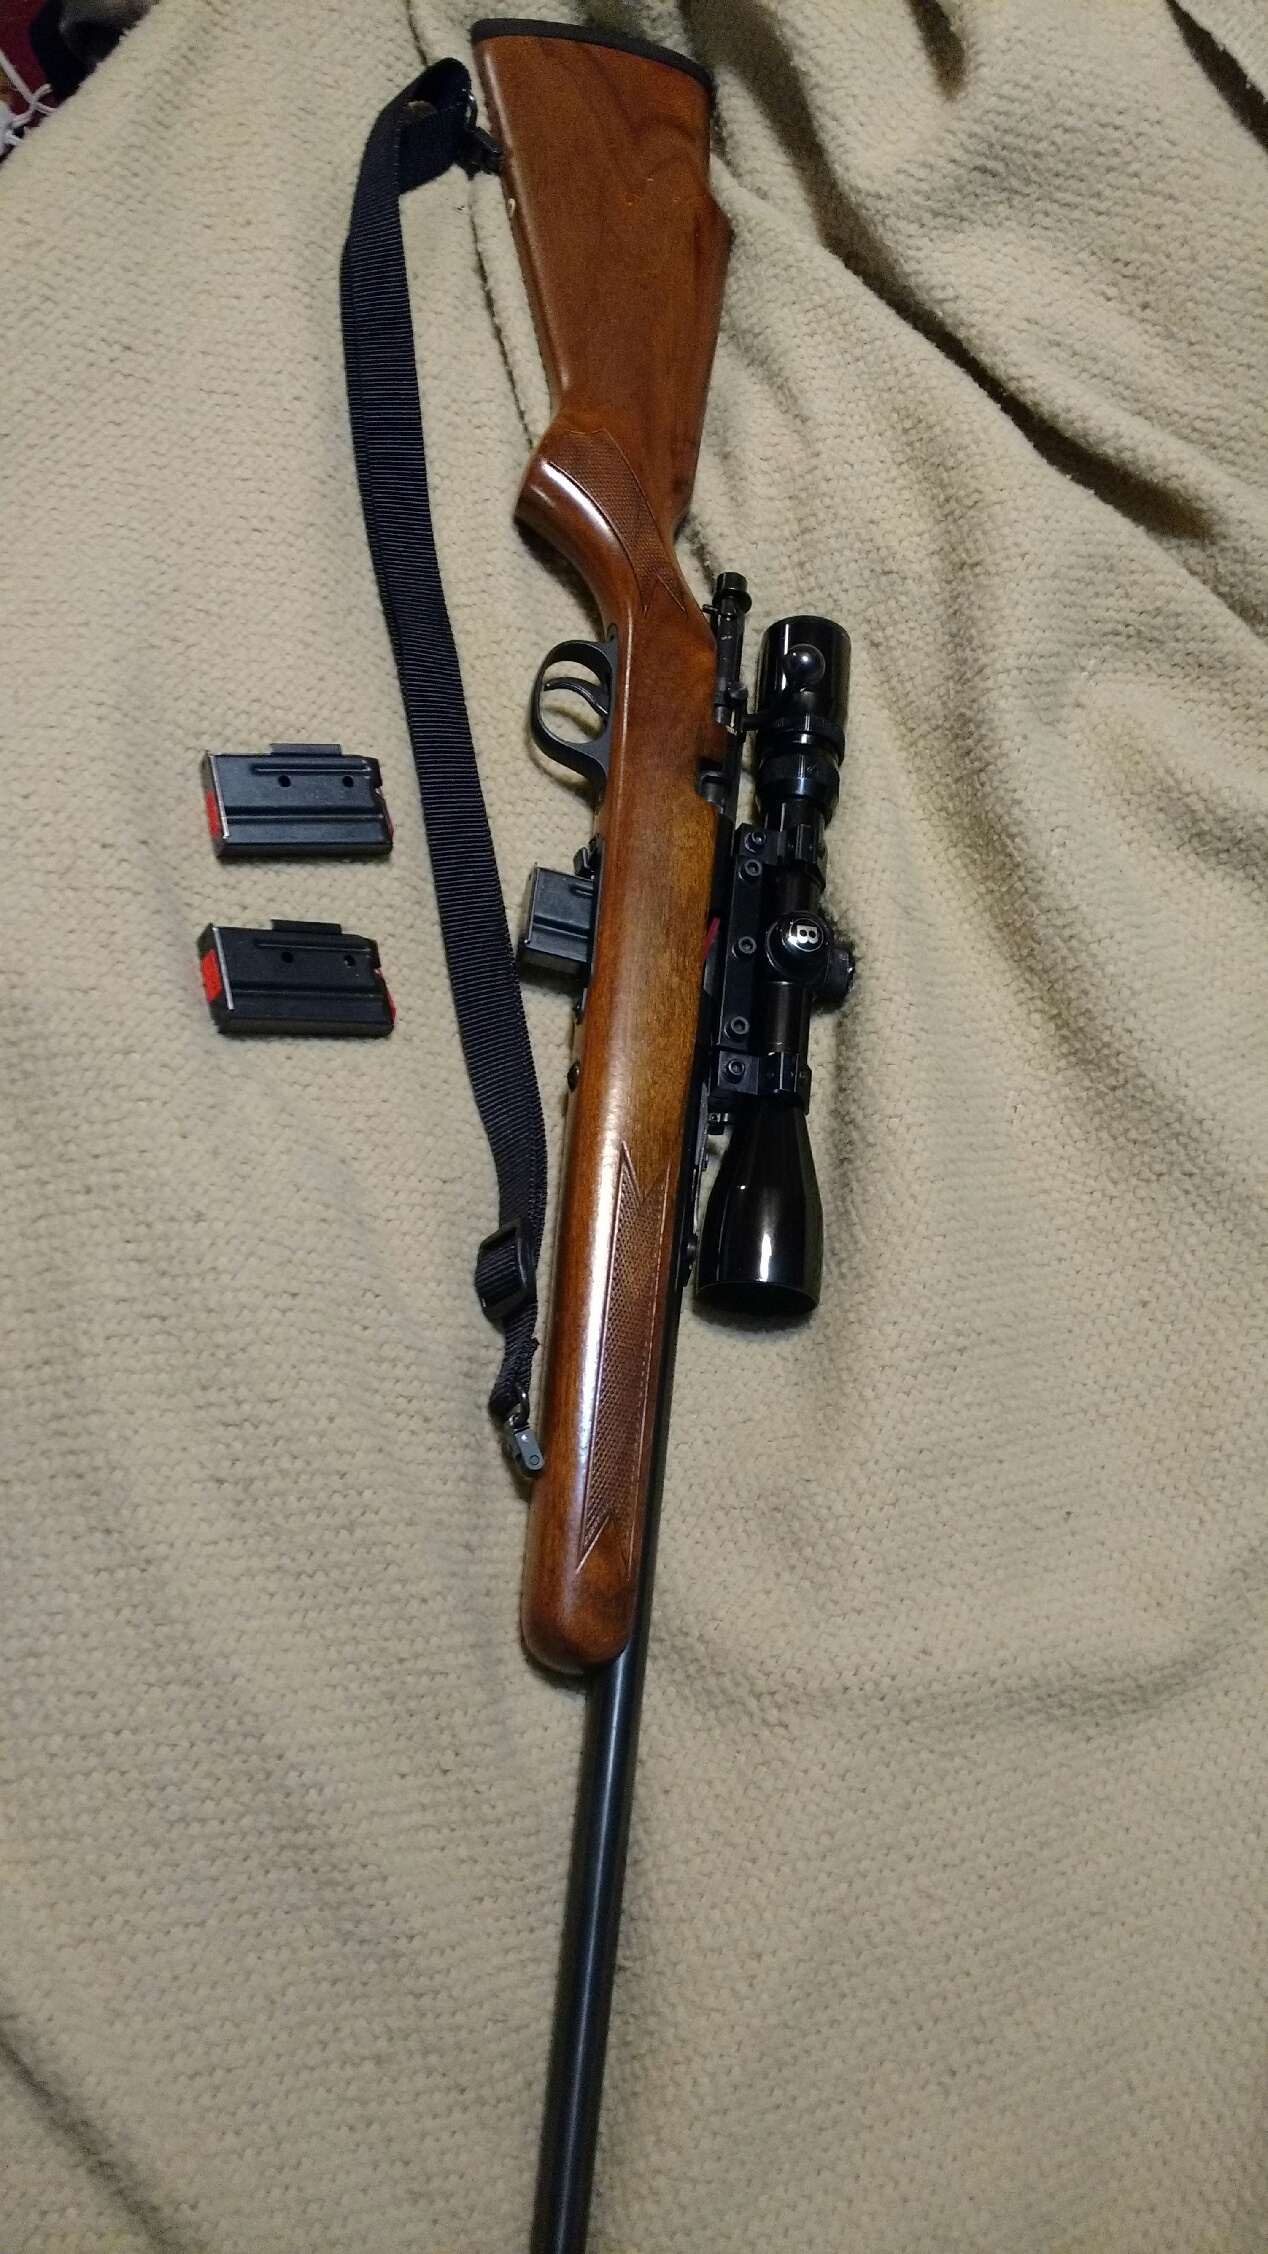 marlin model 882 22 mag i bought today gun and game the